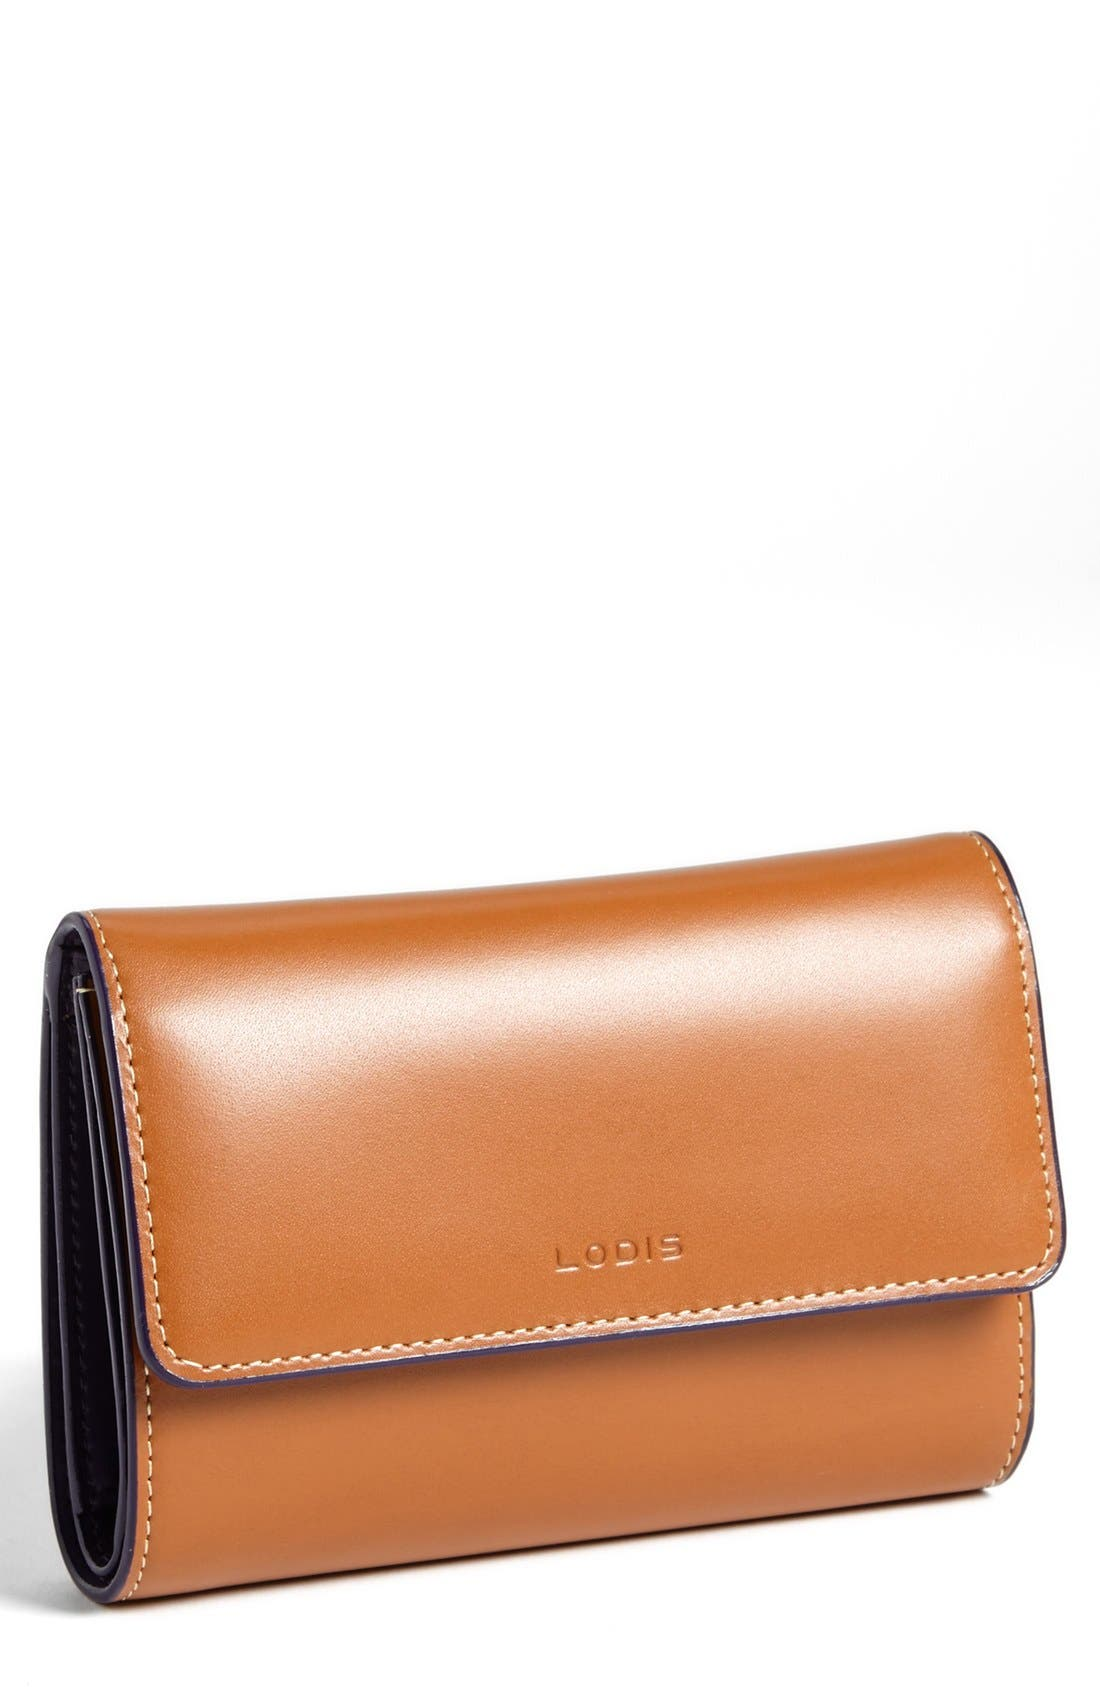 Main Image - Lodis 'Audrey' Continental Wallet